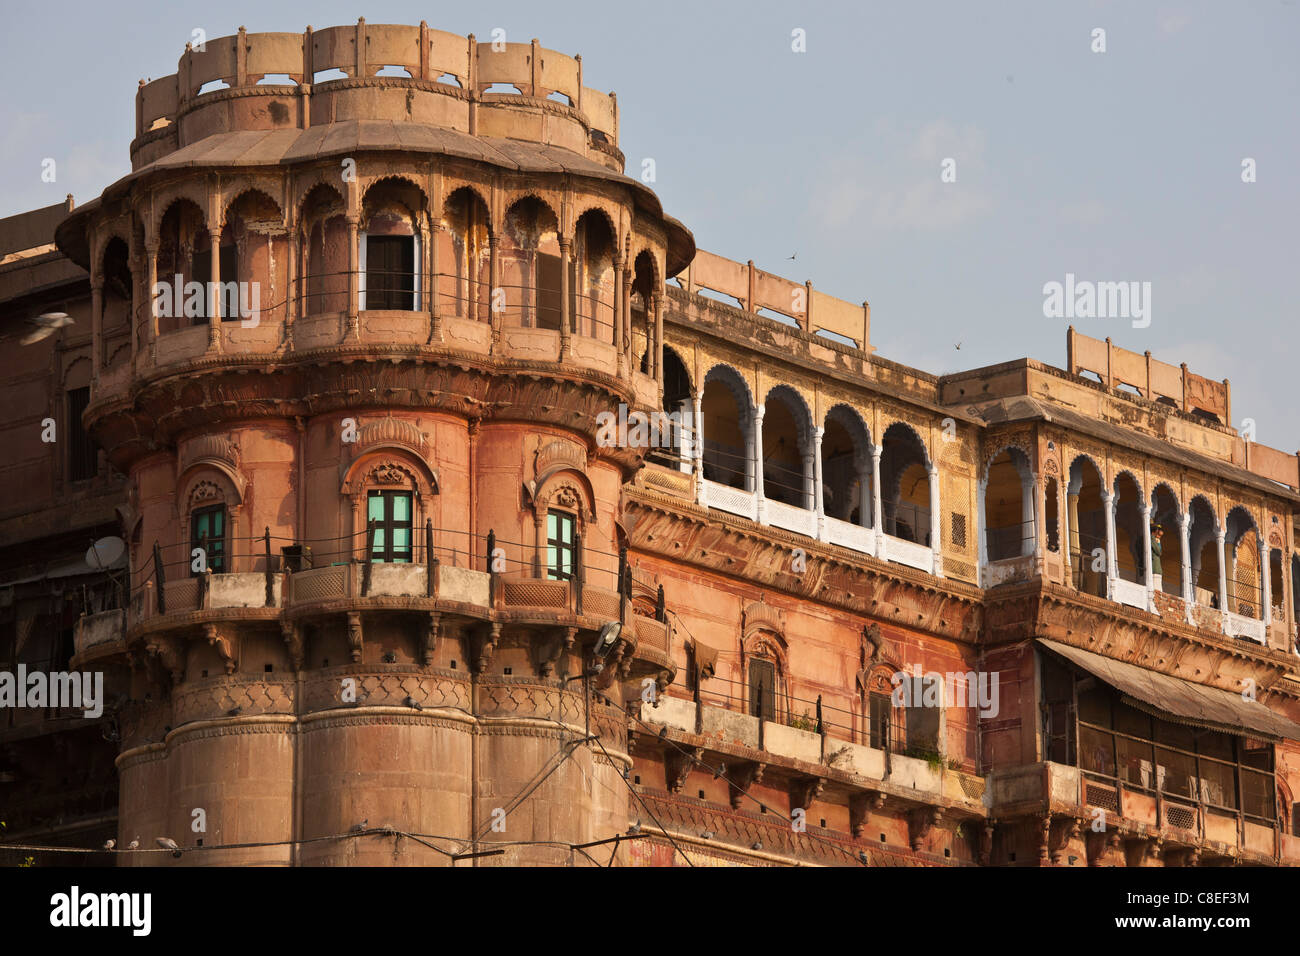 Stock Photo   Traditional Architecture Ancient Building Fronting The Famous  Ghats By The Ganges River In Holy City Of Varanasi, India